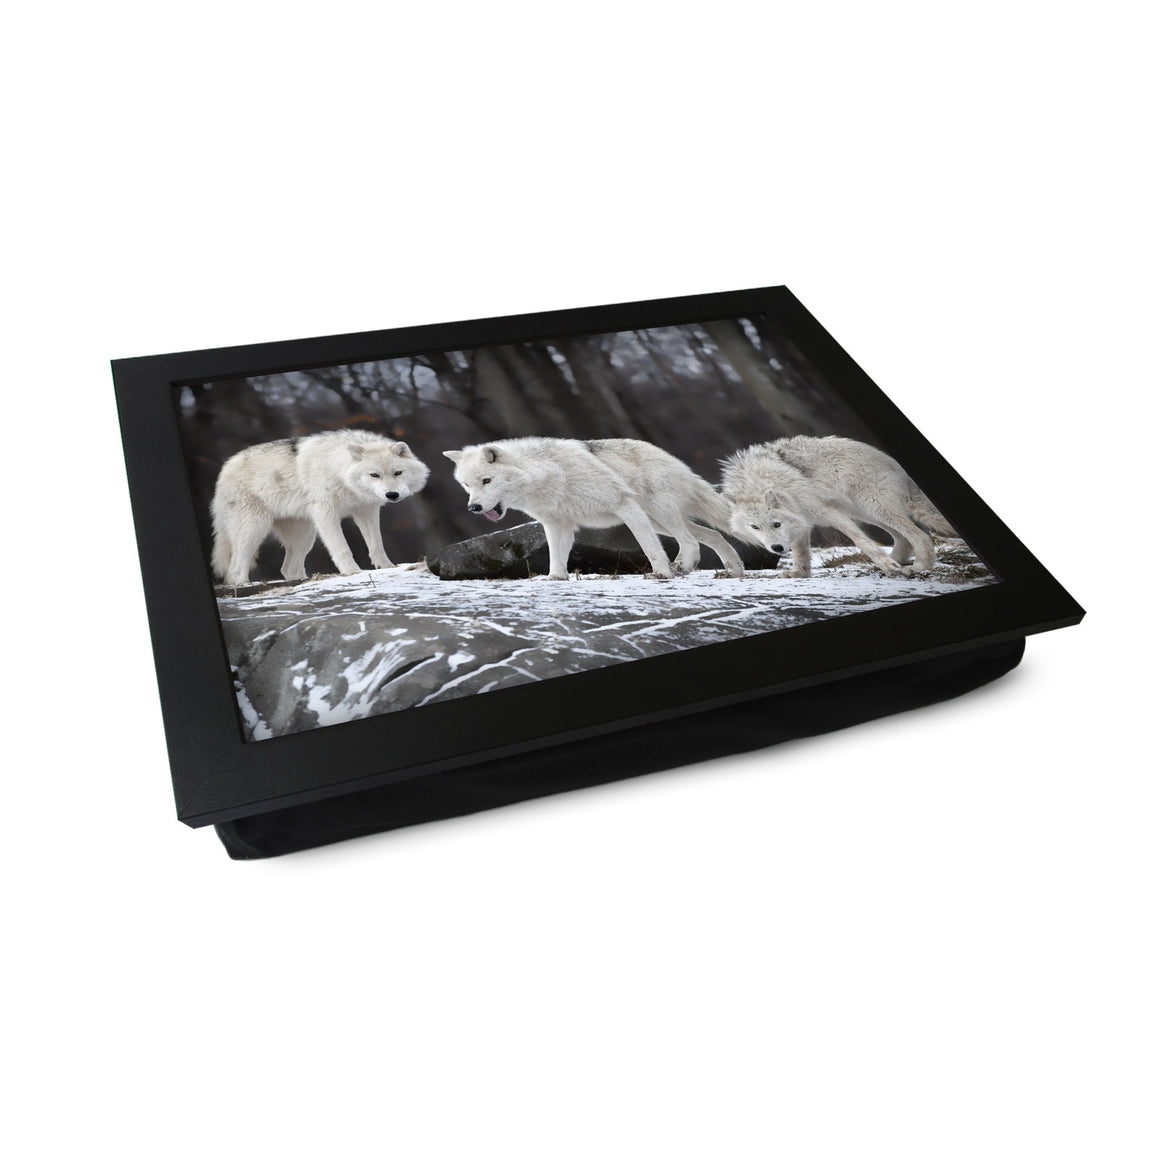 Three White Wolves Lap Tray - L0003